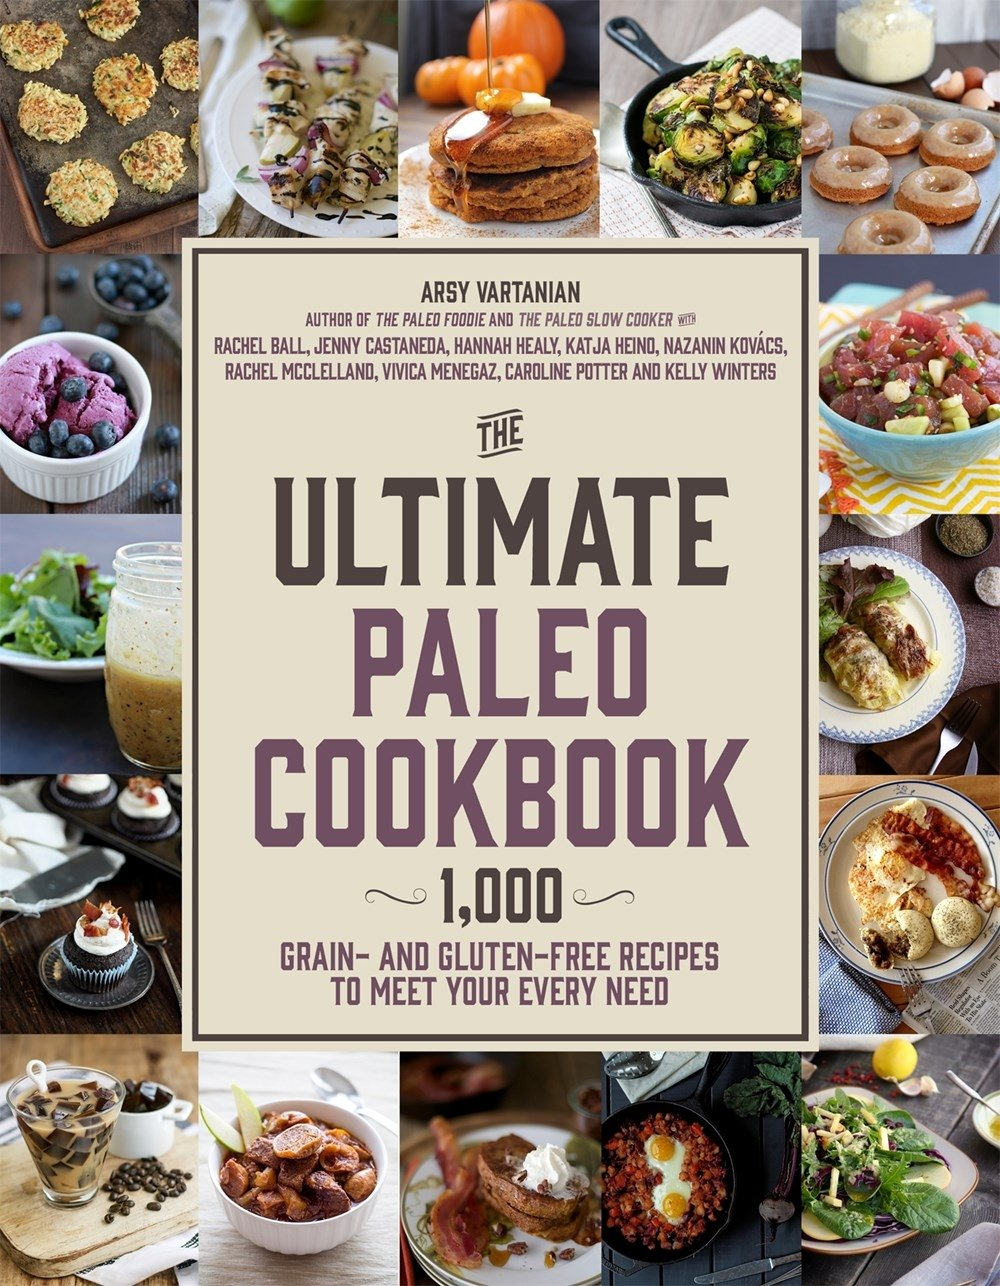 The Ultimate Paleo Cookbook: 900 Grain- and Gluten-Free Recipes to Meet Your Every Need by Page Street Publishing